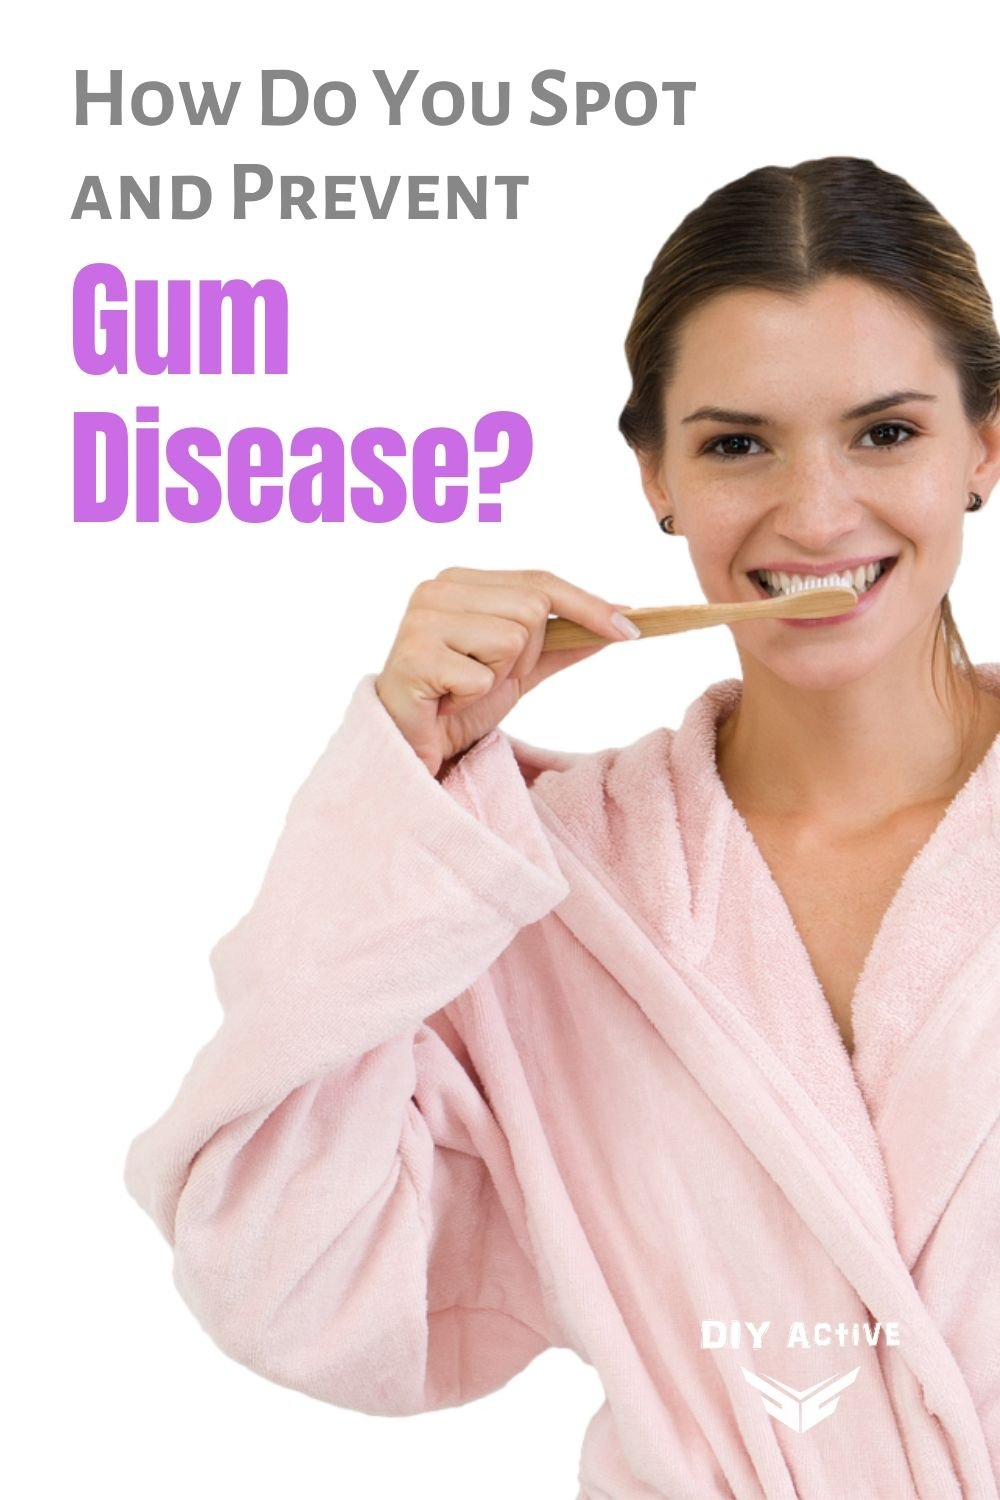 How to Spot and Prevent Gum Disease